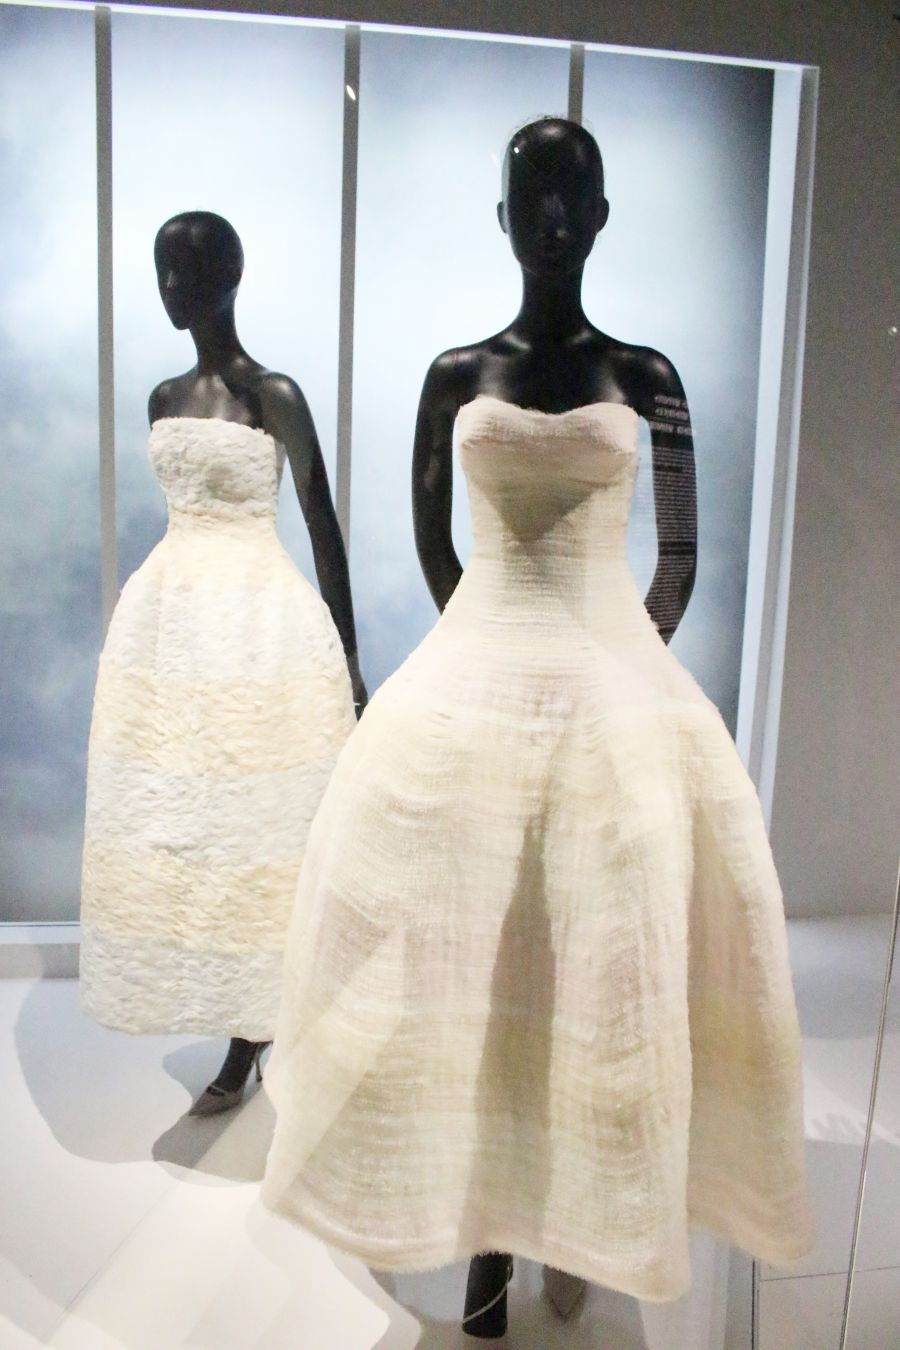 L'exposition Christian Dior